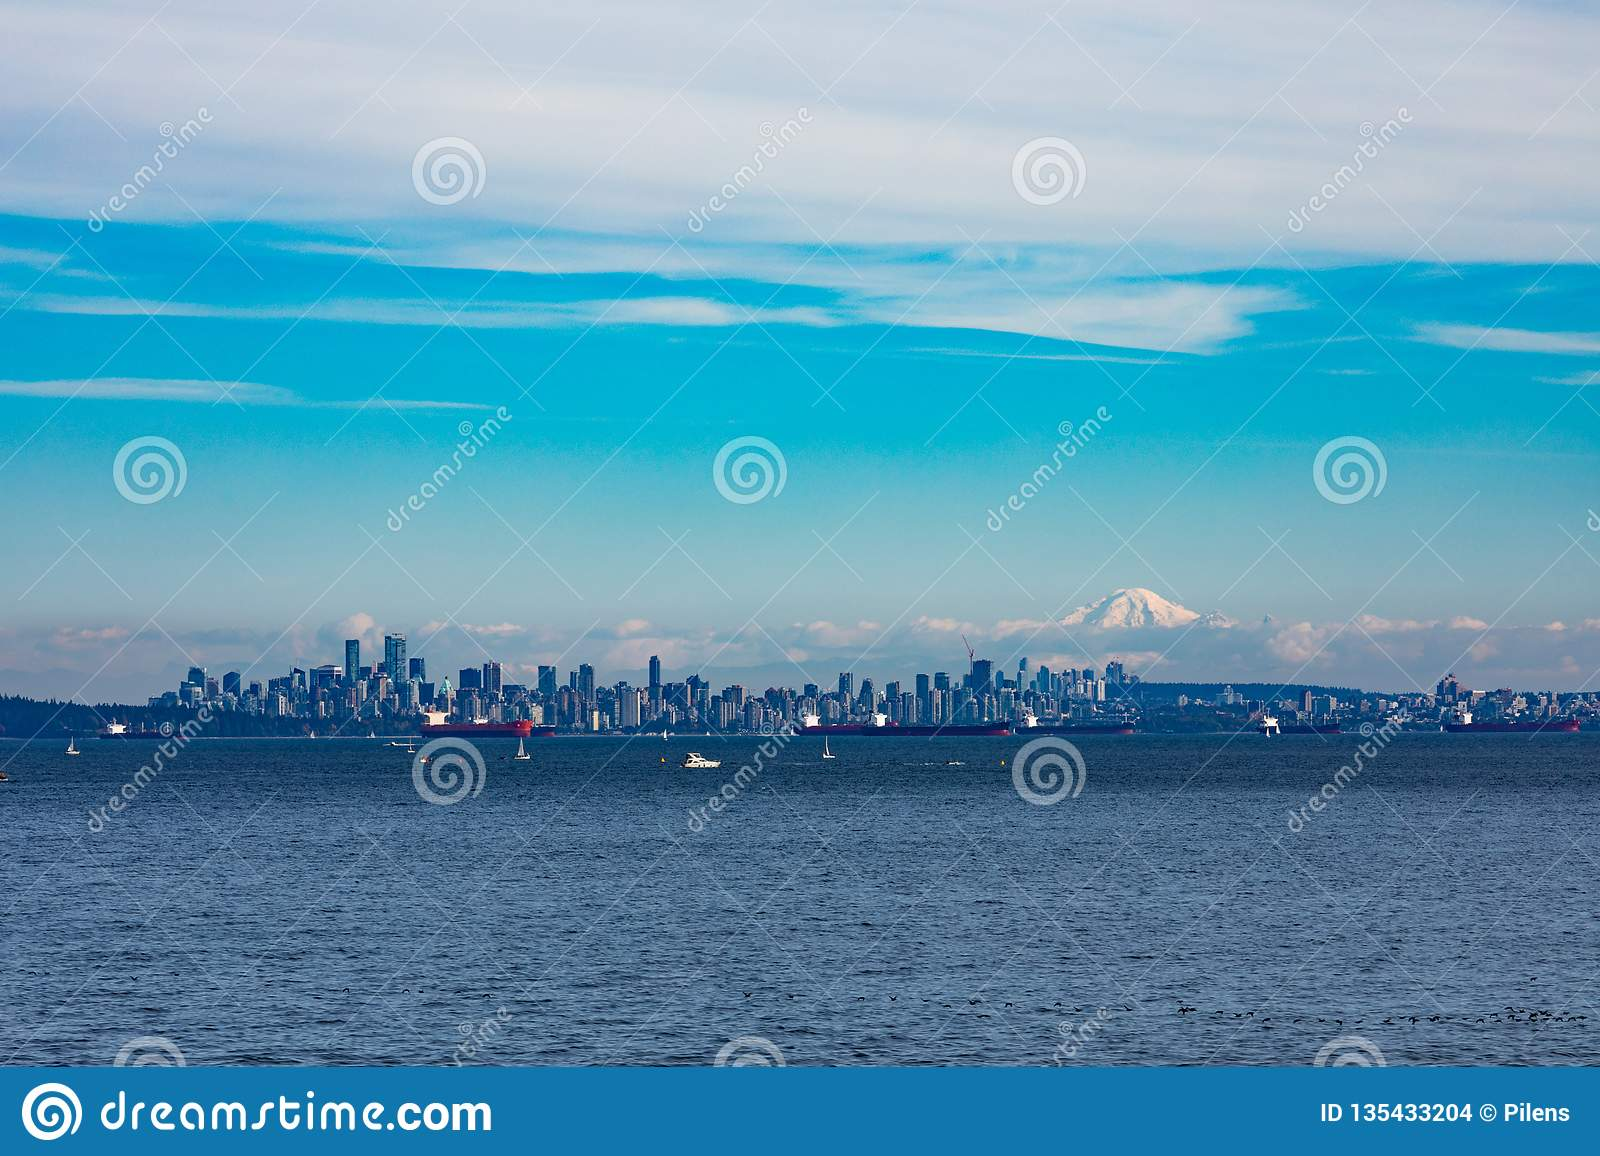 Vancouver Skyline And Oil Tankers BC Canada Stock Photo